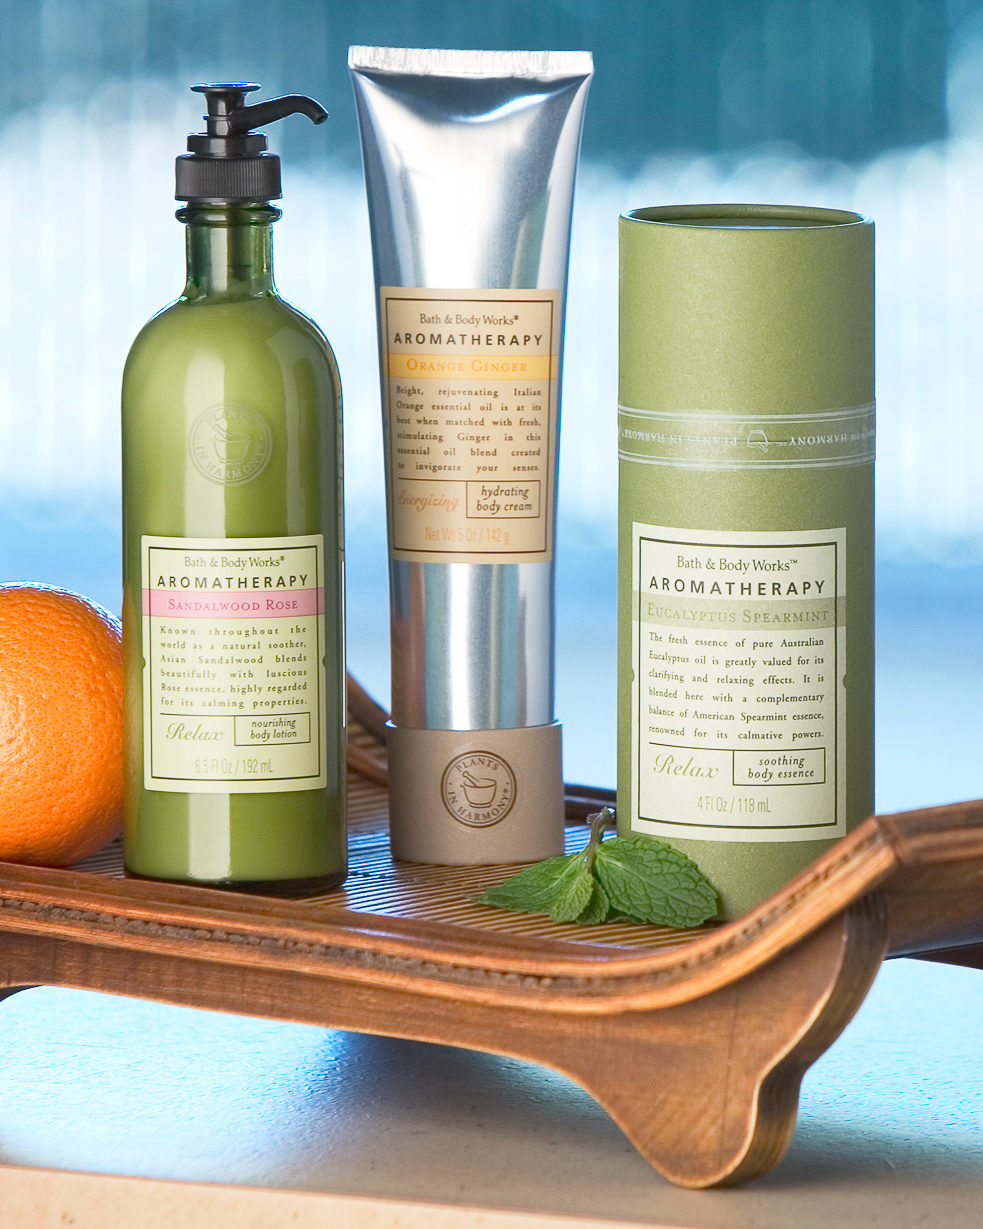 Bath and Body Works aromatherapy products on a wooden platter.